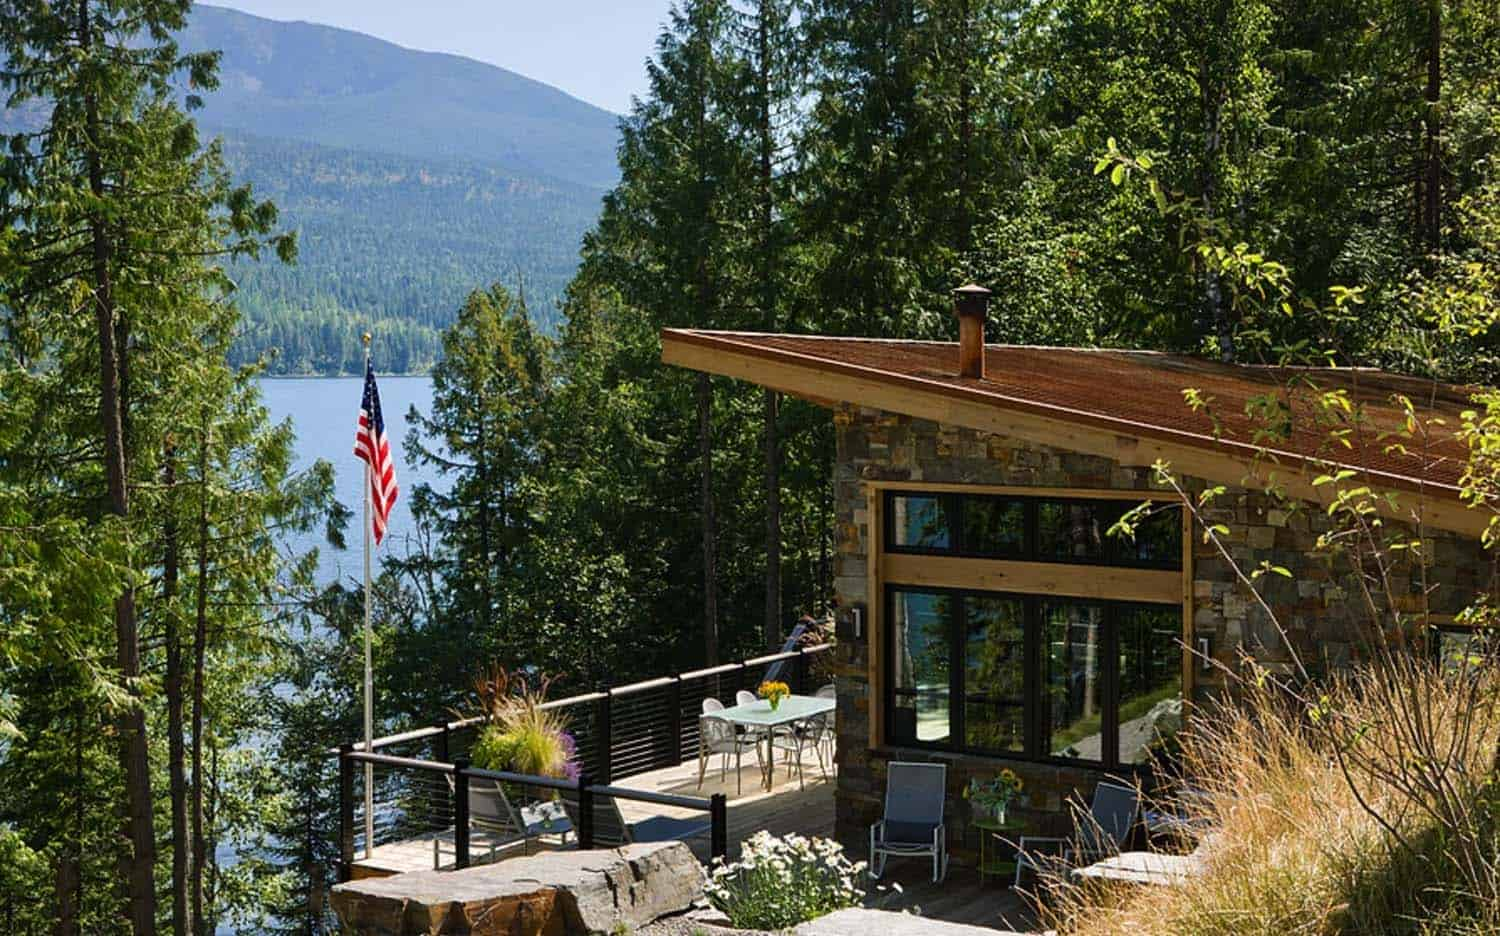 Modern Rustic Cabin on lake house deck designs